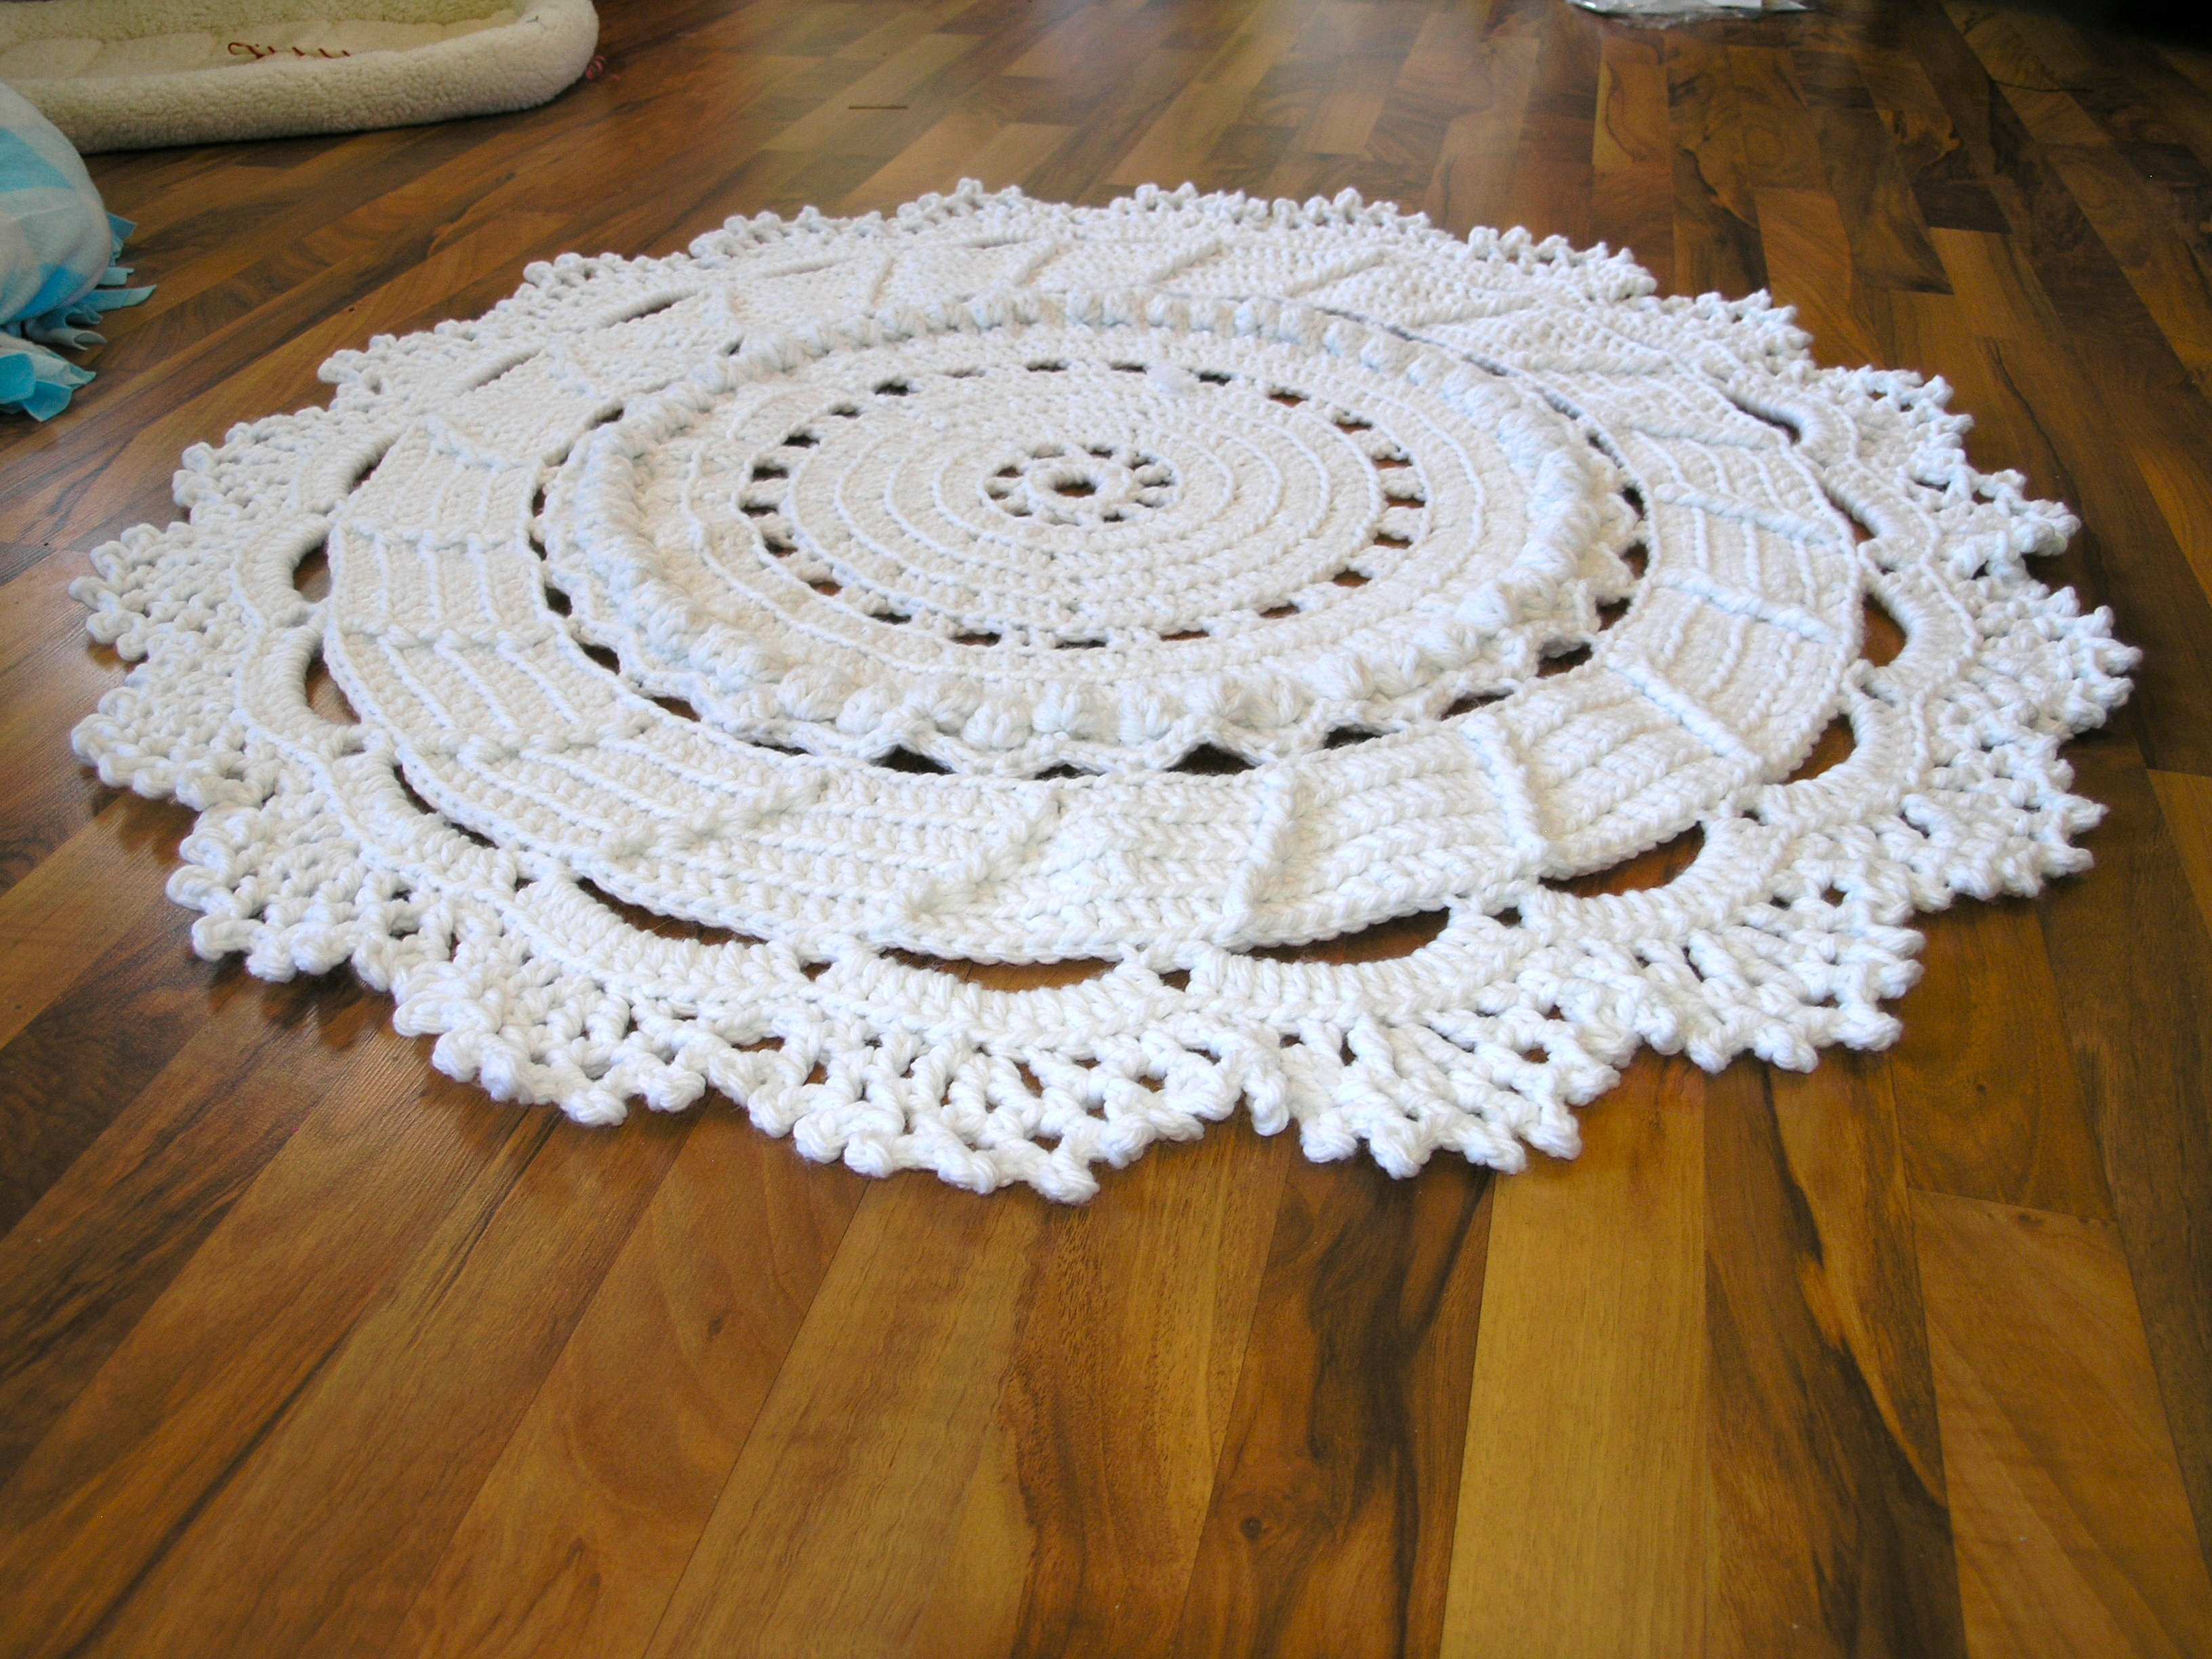 ... Wools ? Blog Archive ? A Giant Crochet Doily Rug for Our Living Room